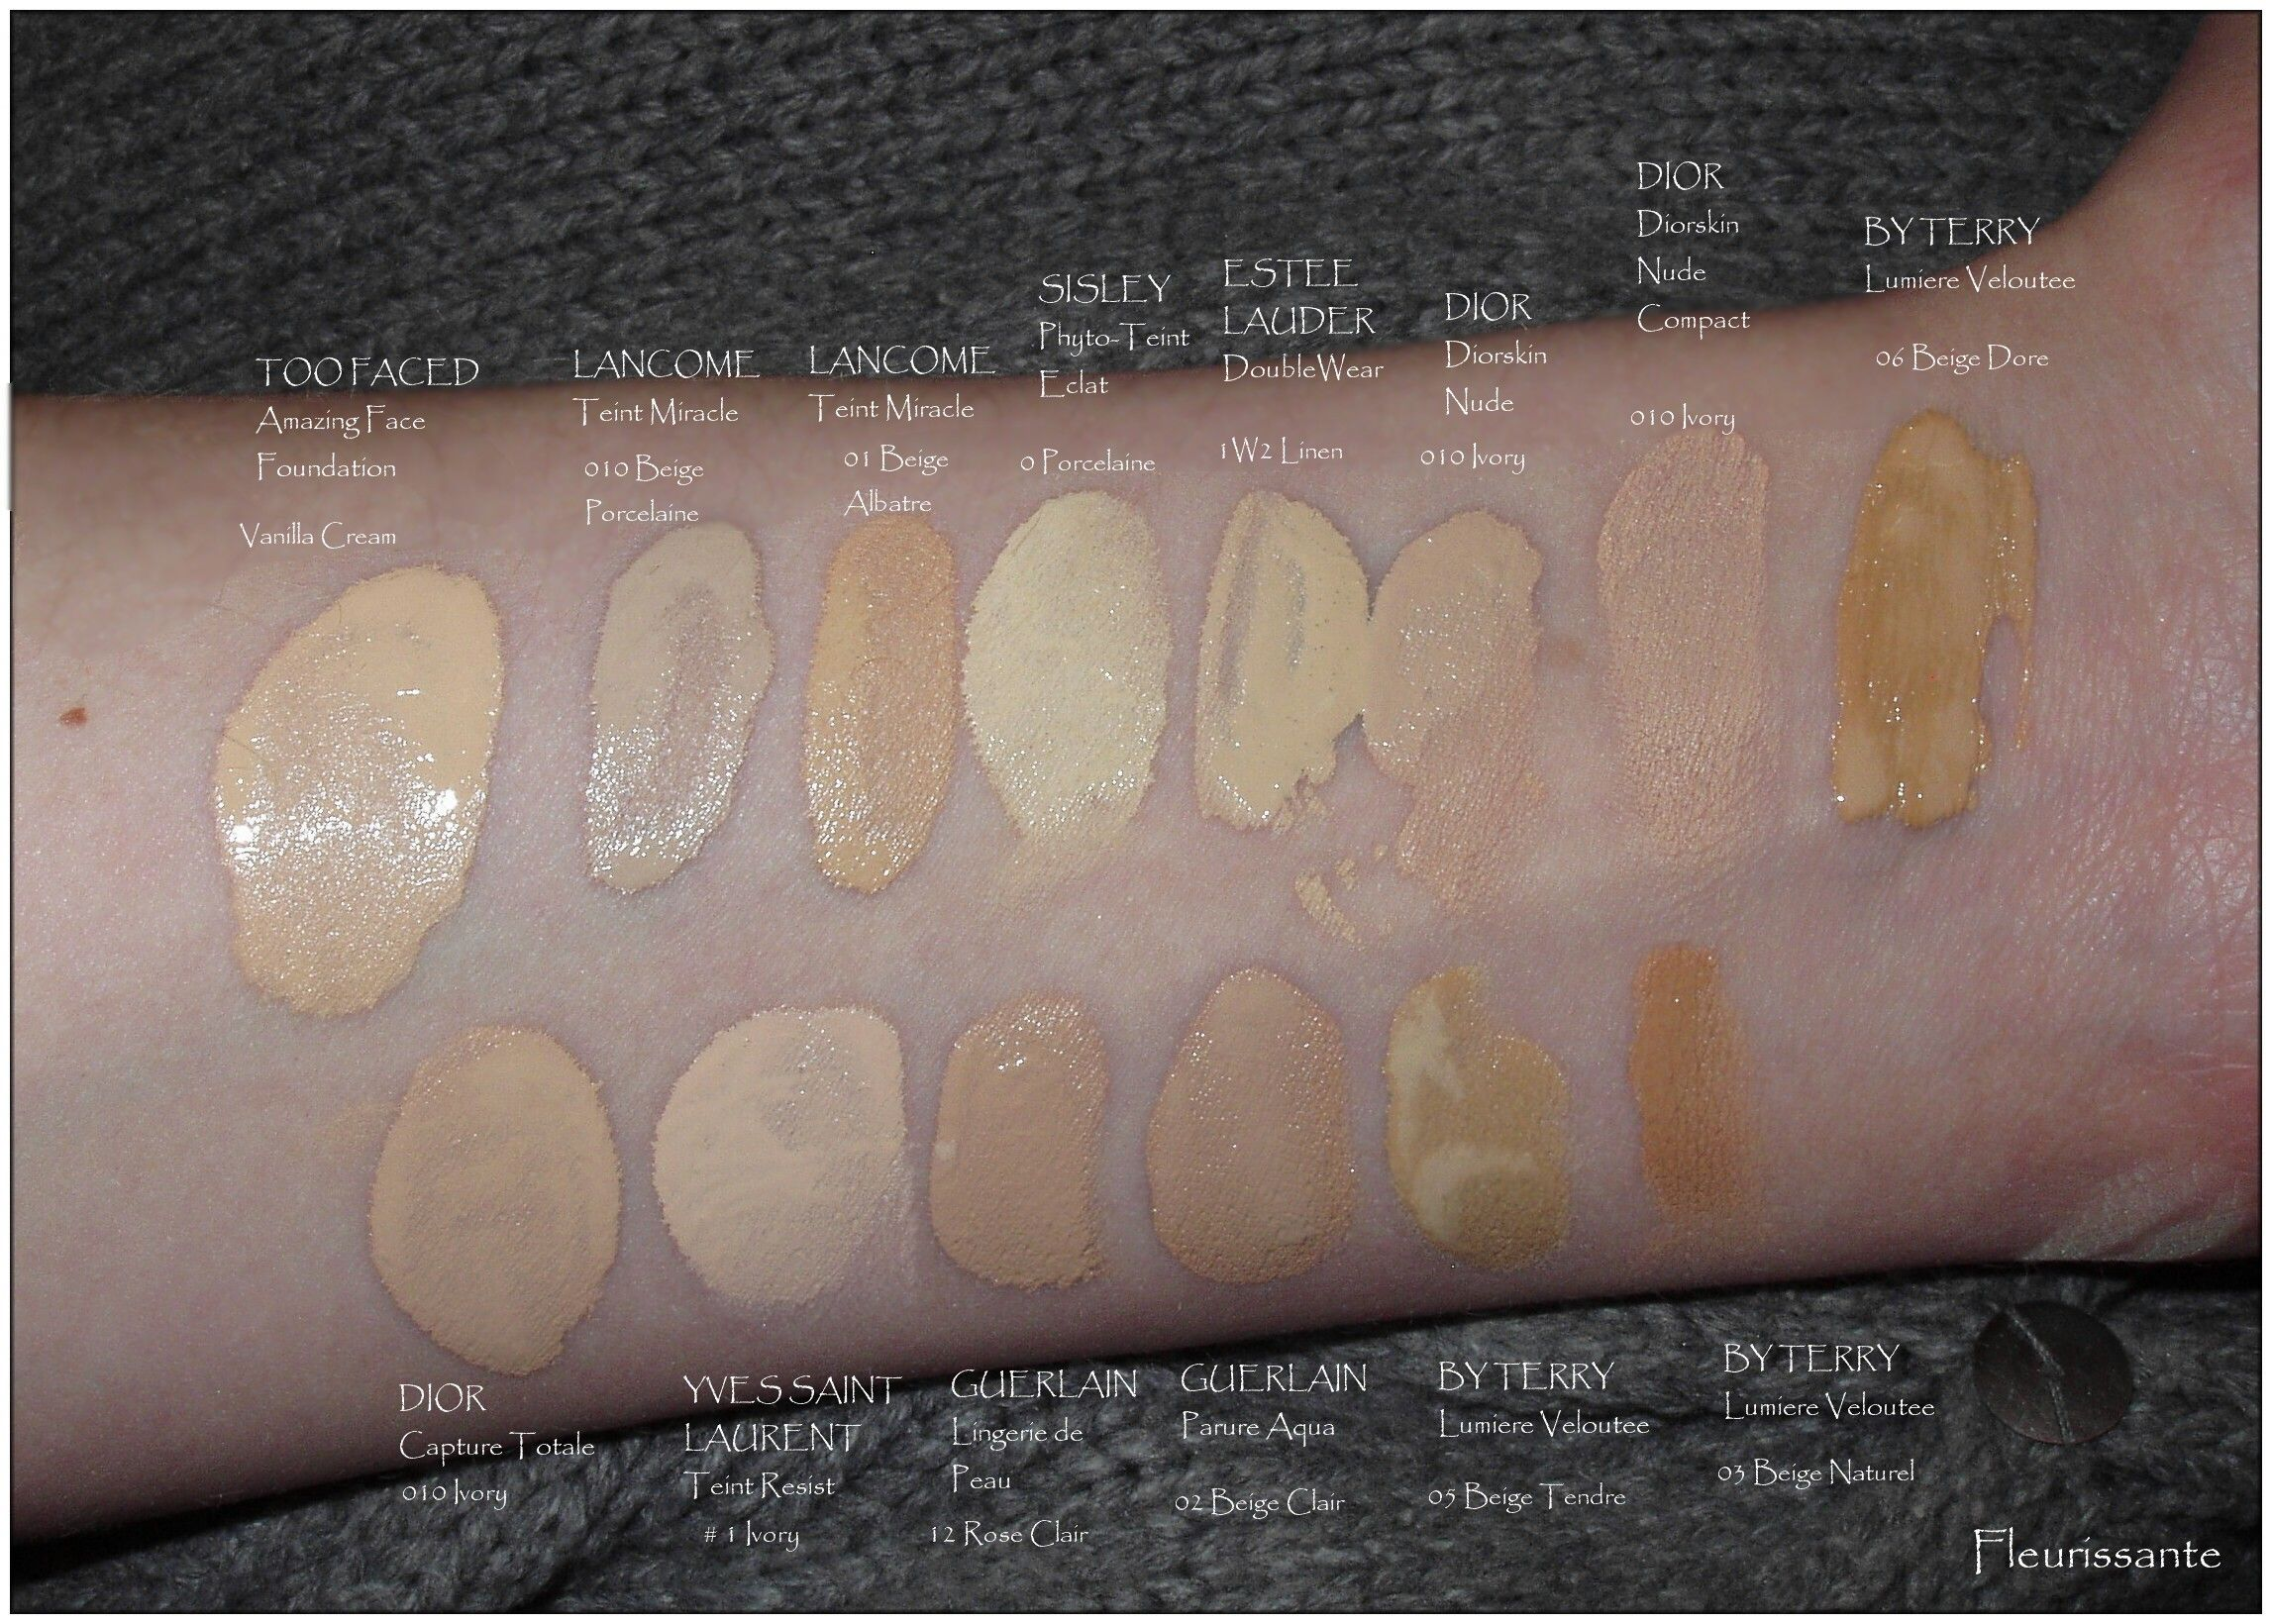 dior new foundation swatches